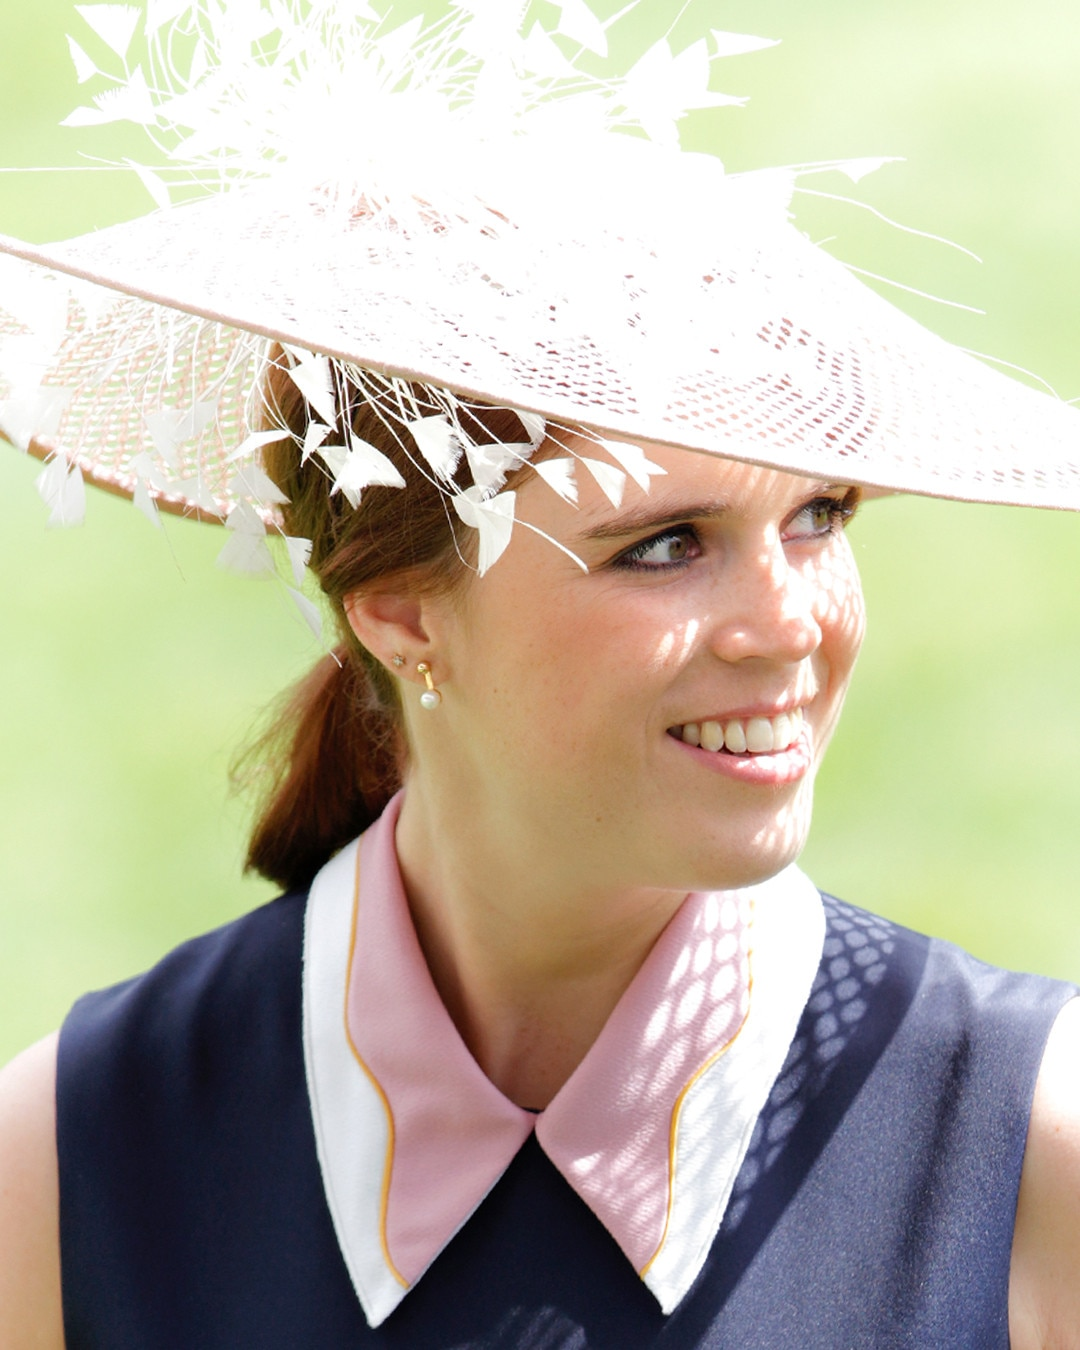 The Best Man at Princess Eugenie & Jack Brooksbank's wedding is revealed